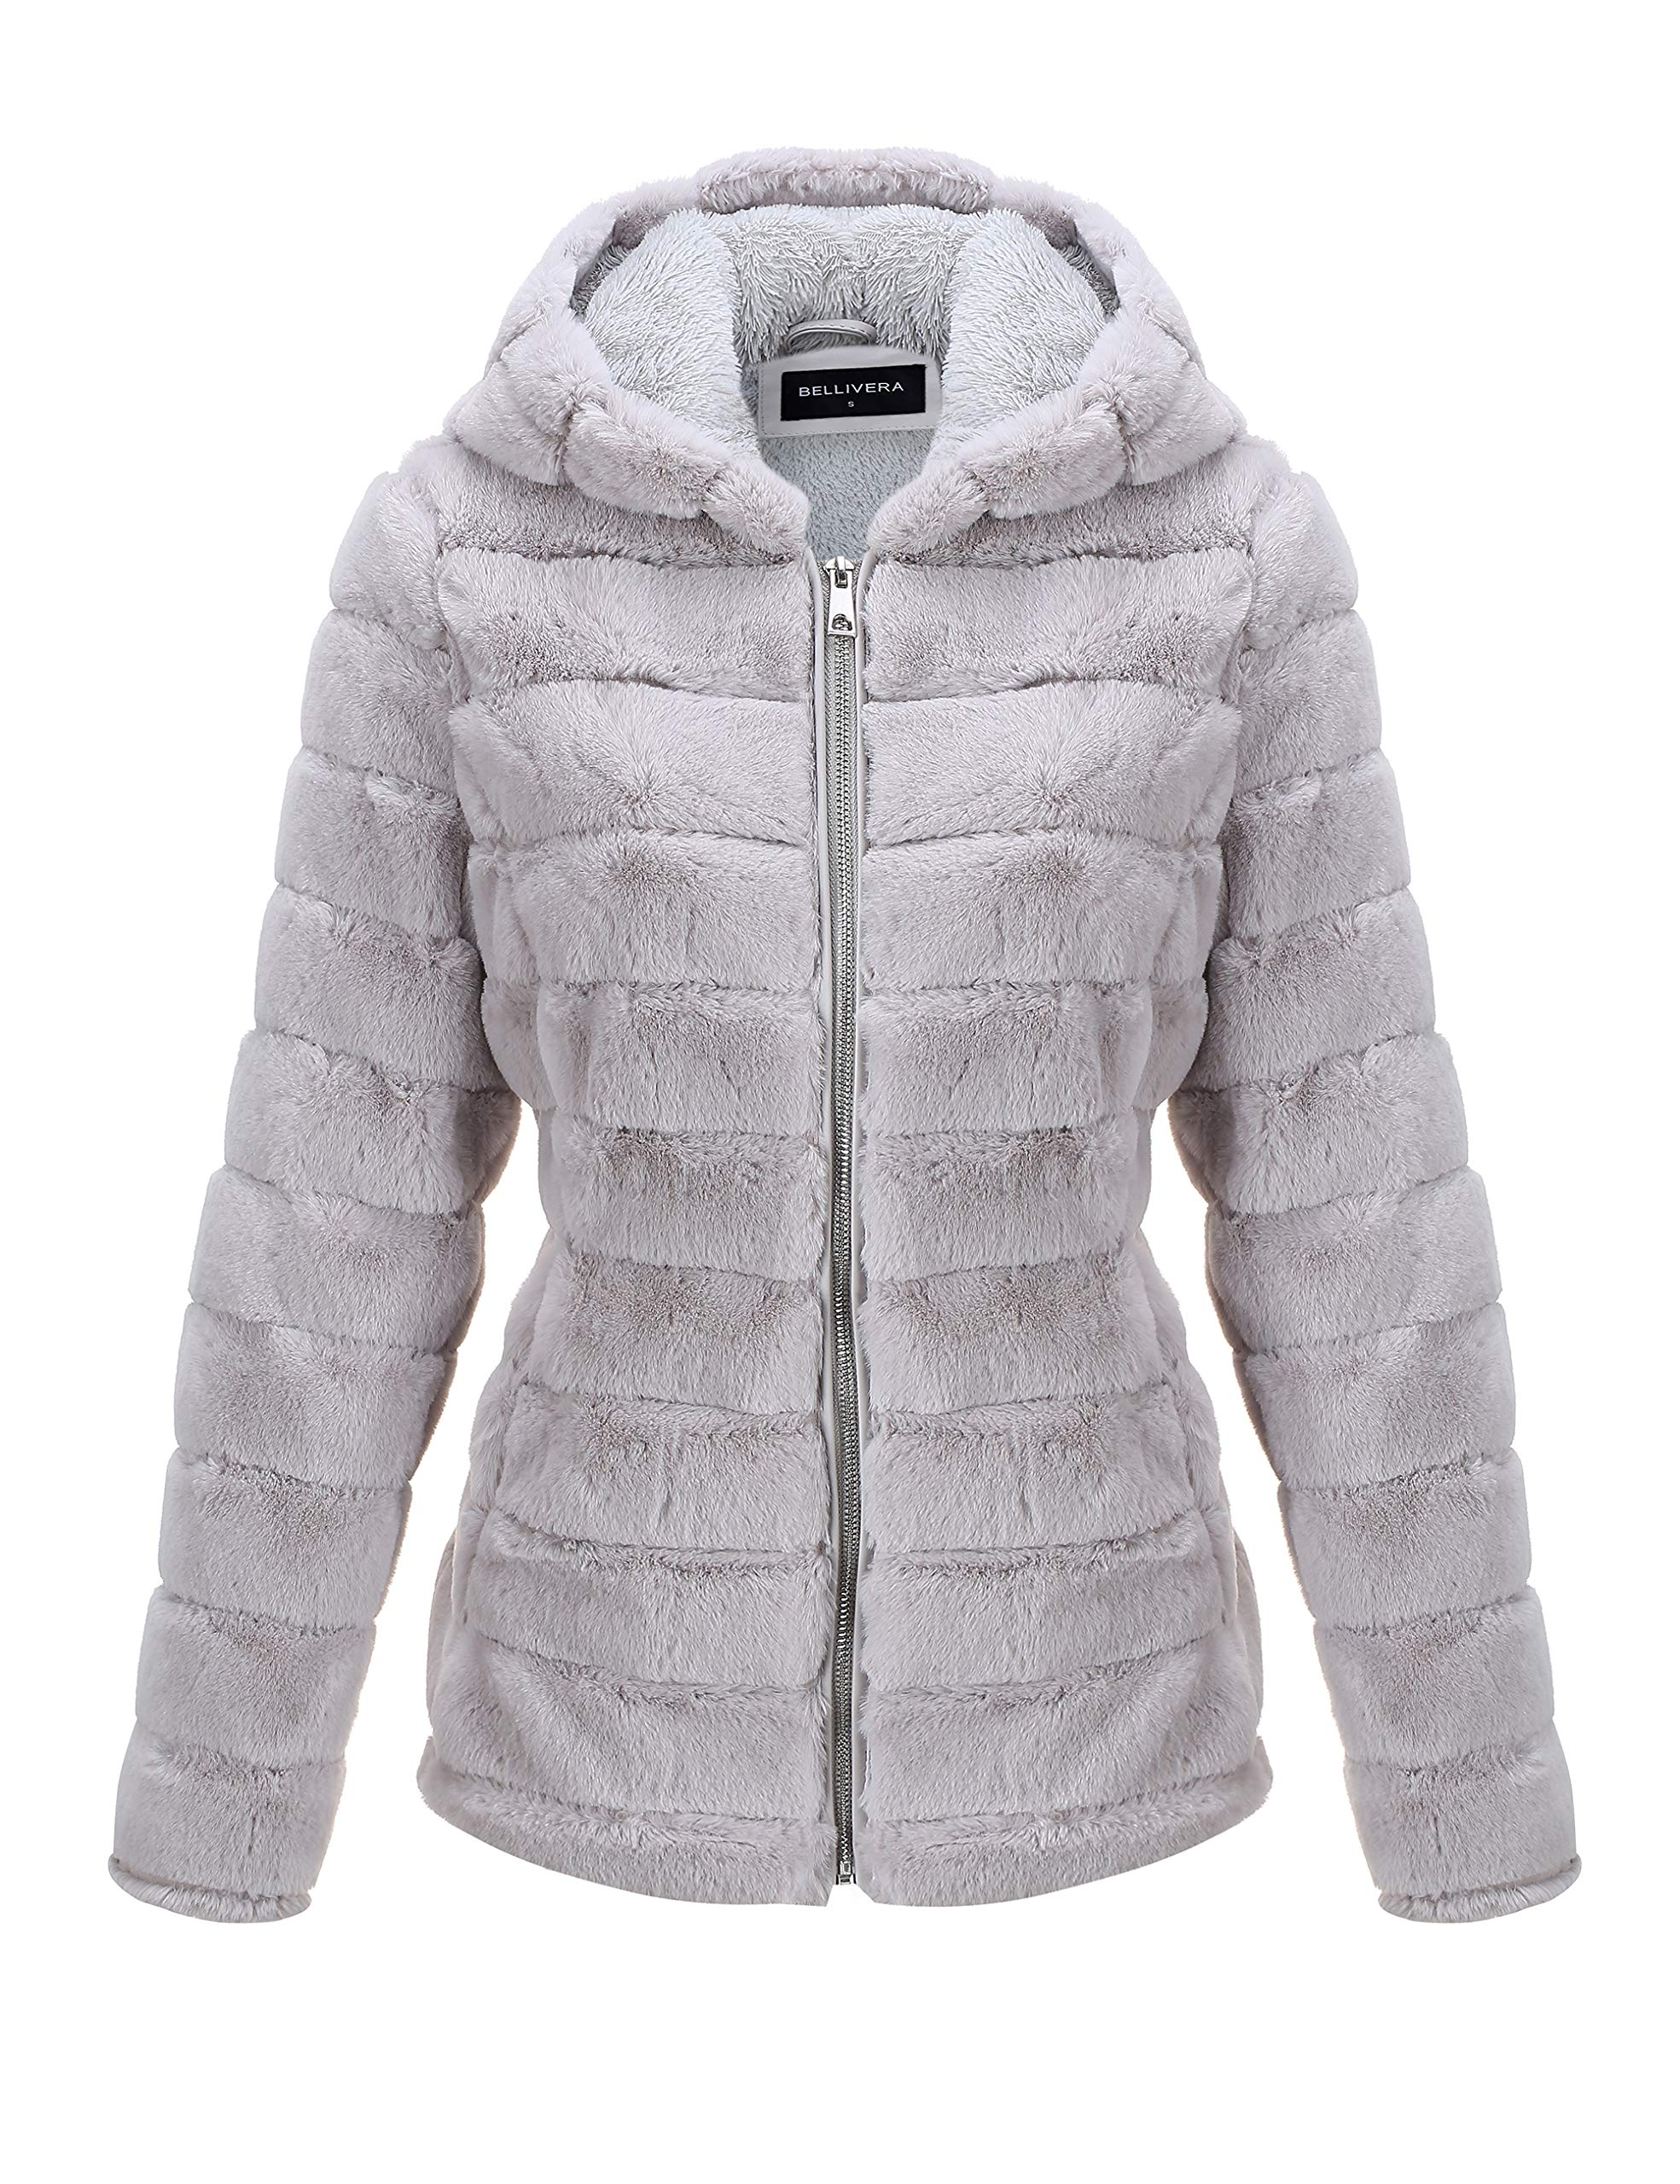 Bellivera Women's Faux Fur Jacket for Winter,Faux Rabbit Hair Shaggy Oversized Coat with 2 Side-Seam Pockets and Hood